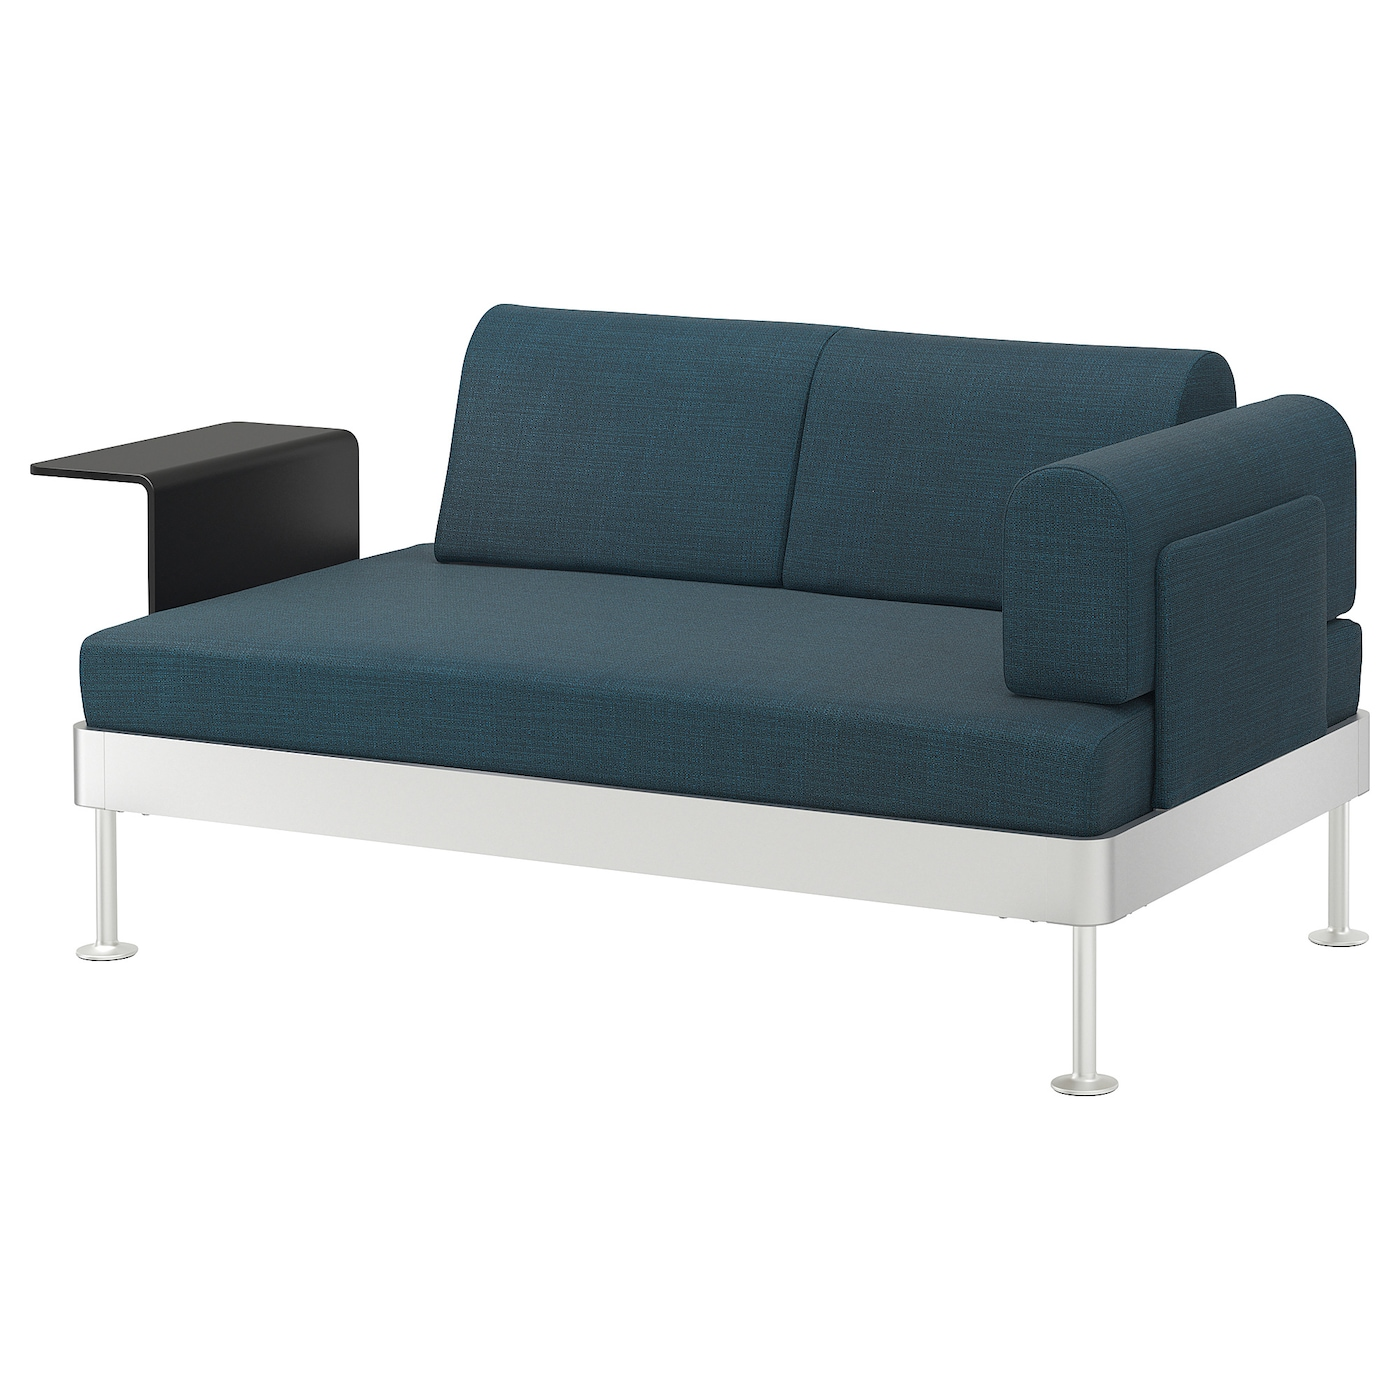 Delaktig 2 Seat Sofa With Side Table Hillared Dark Blue Ikea